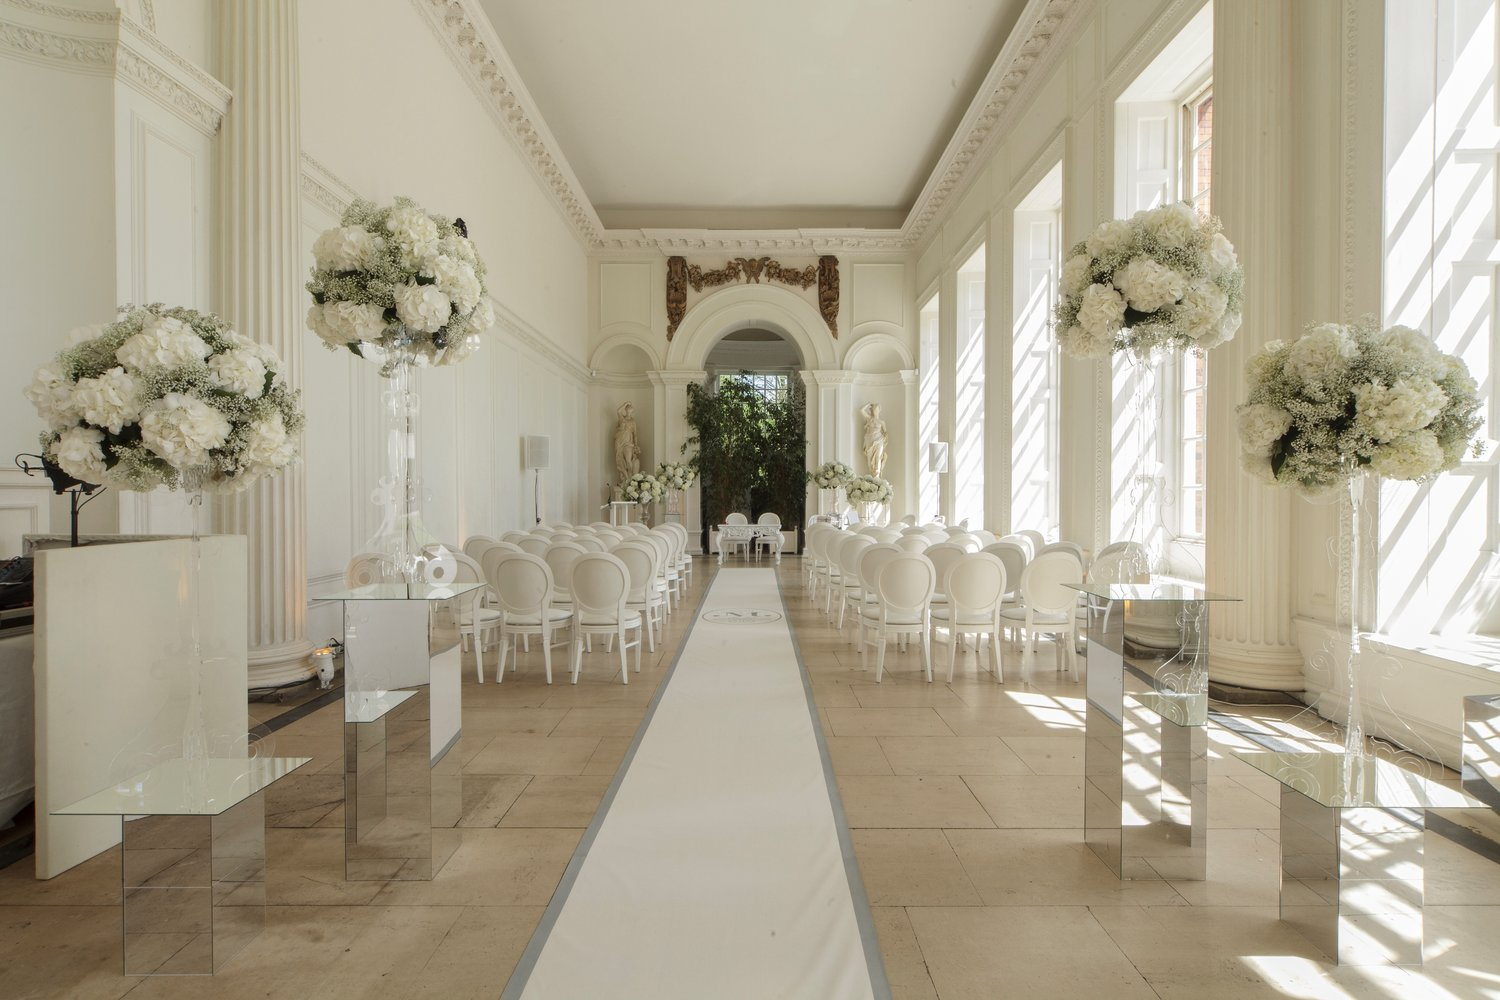 14 of the best wedding venues in London  London Evening